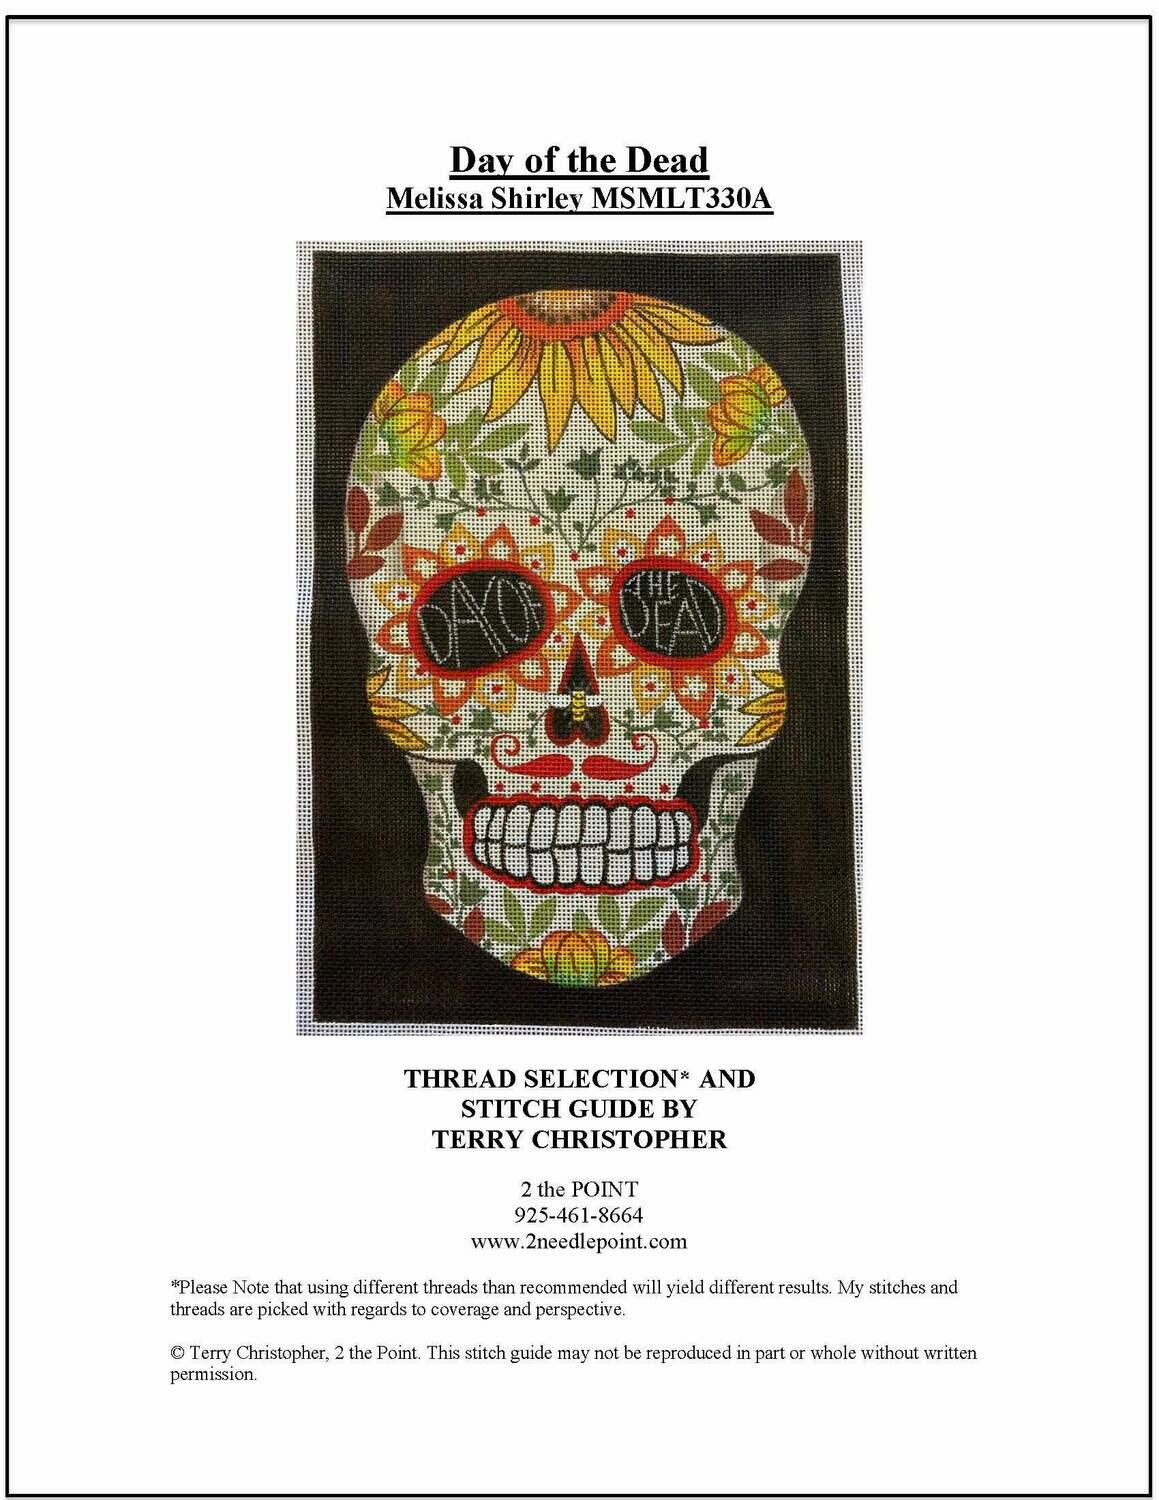 Melissa Shirley, Day of the Dead MSMT330A